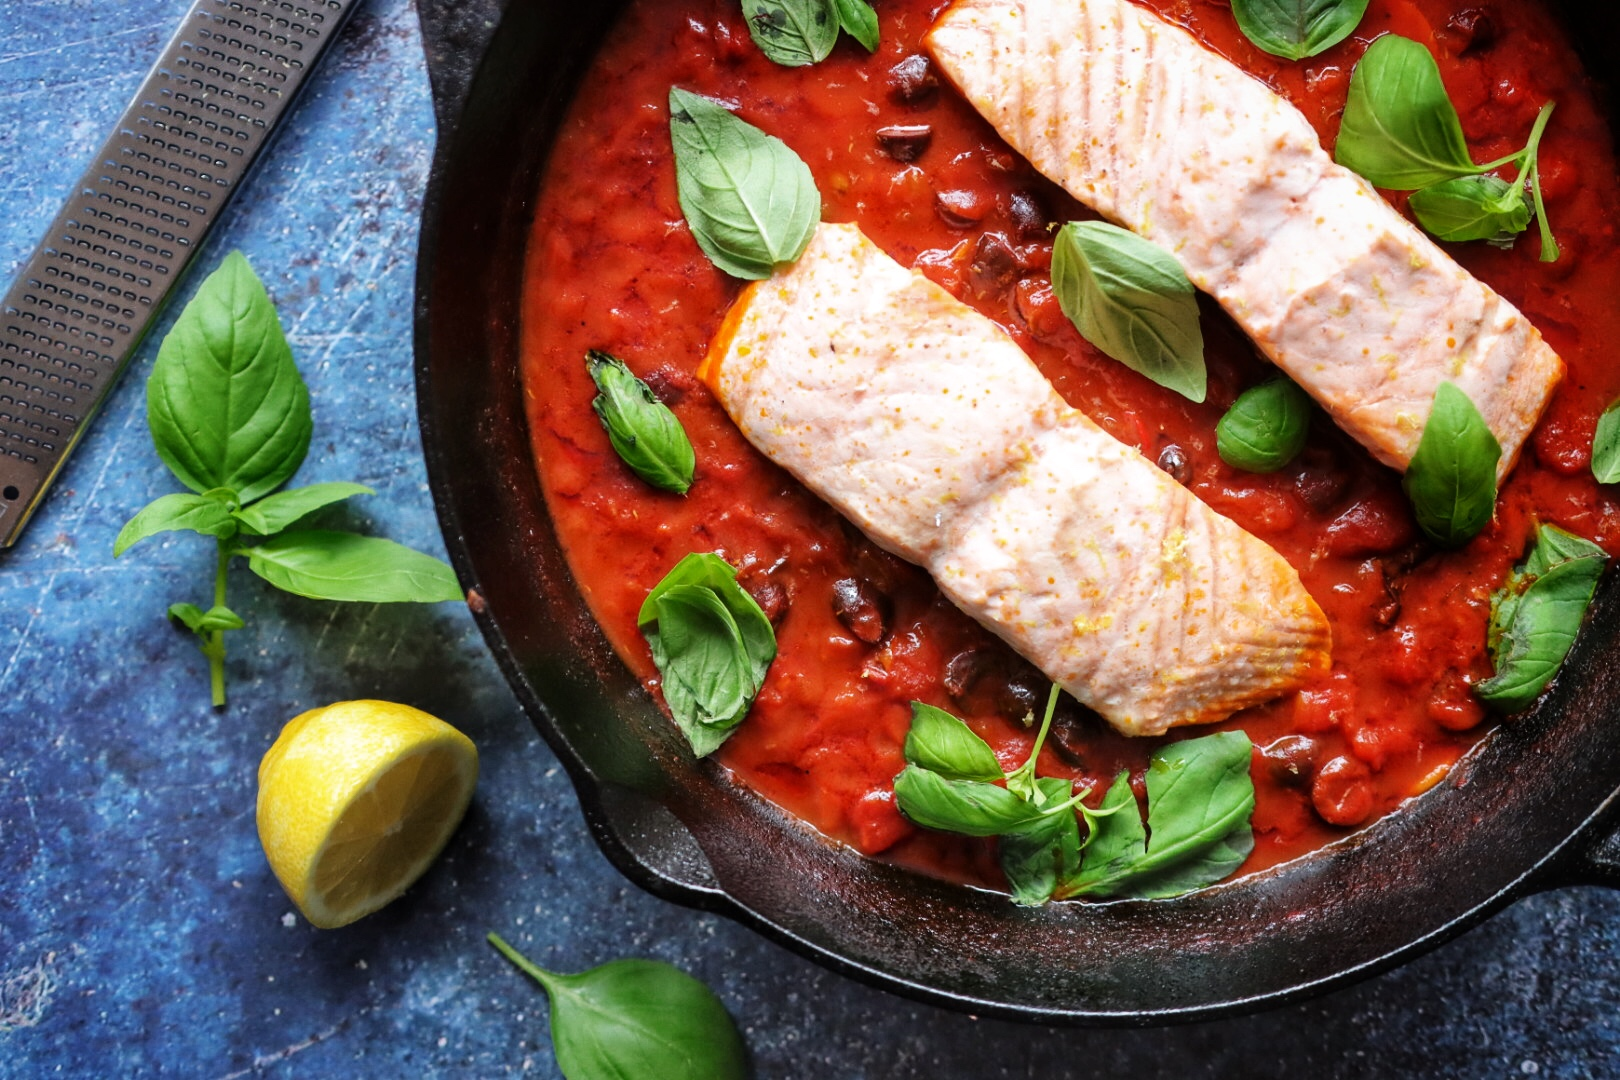 Easy Fish Dinner To Make In Under 20 Minutes